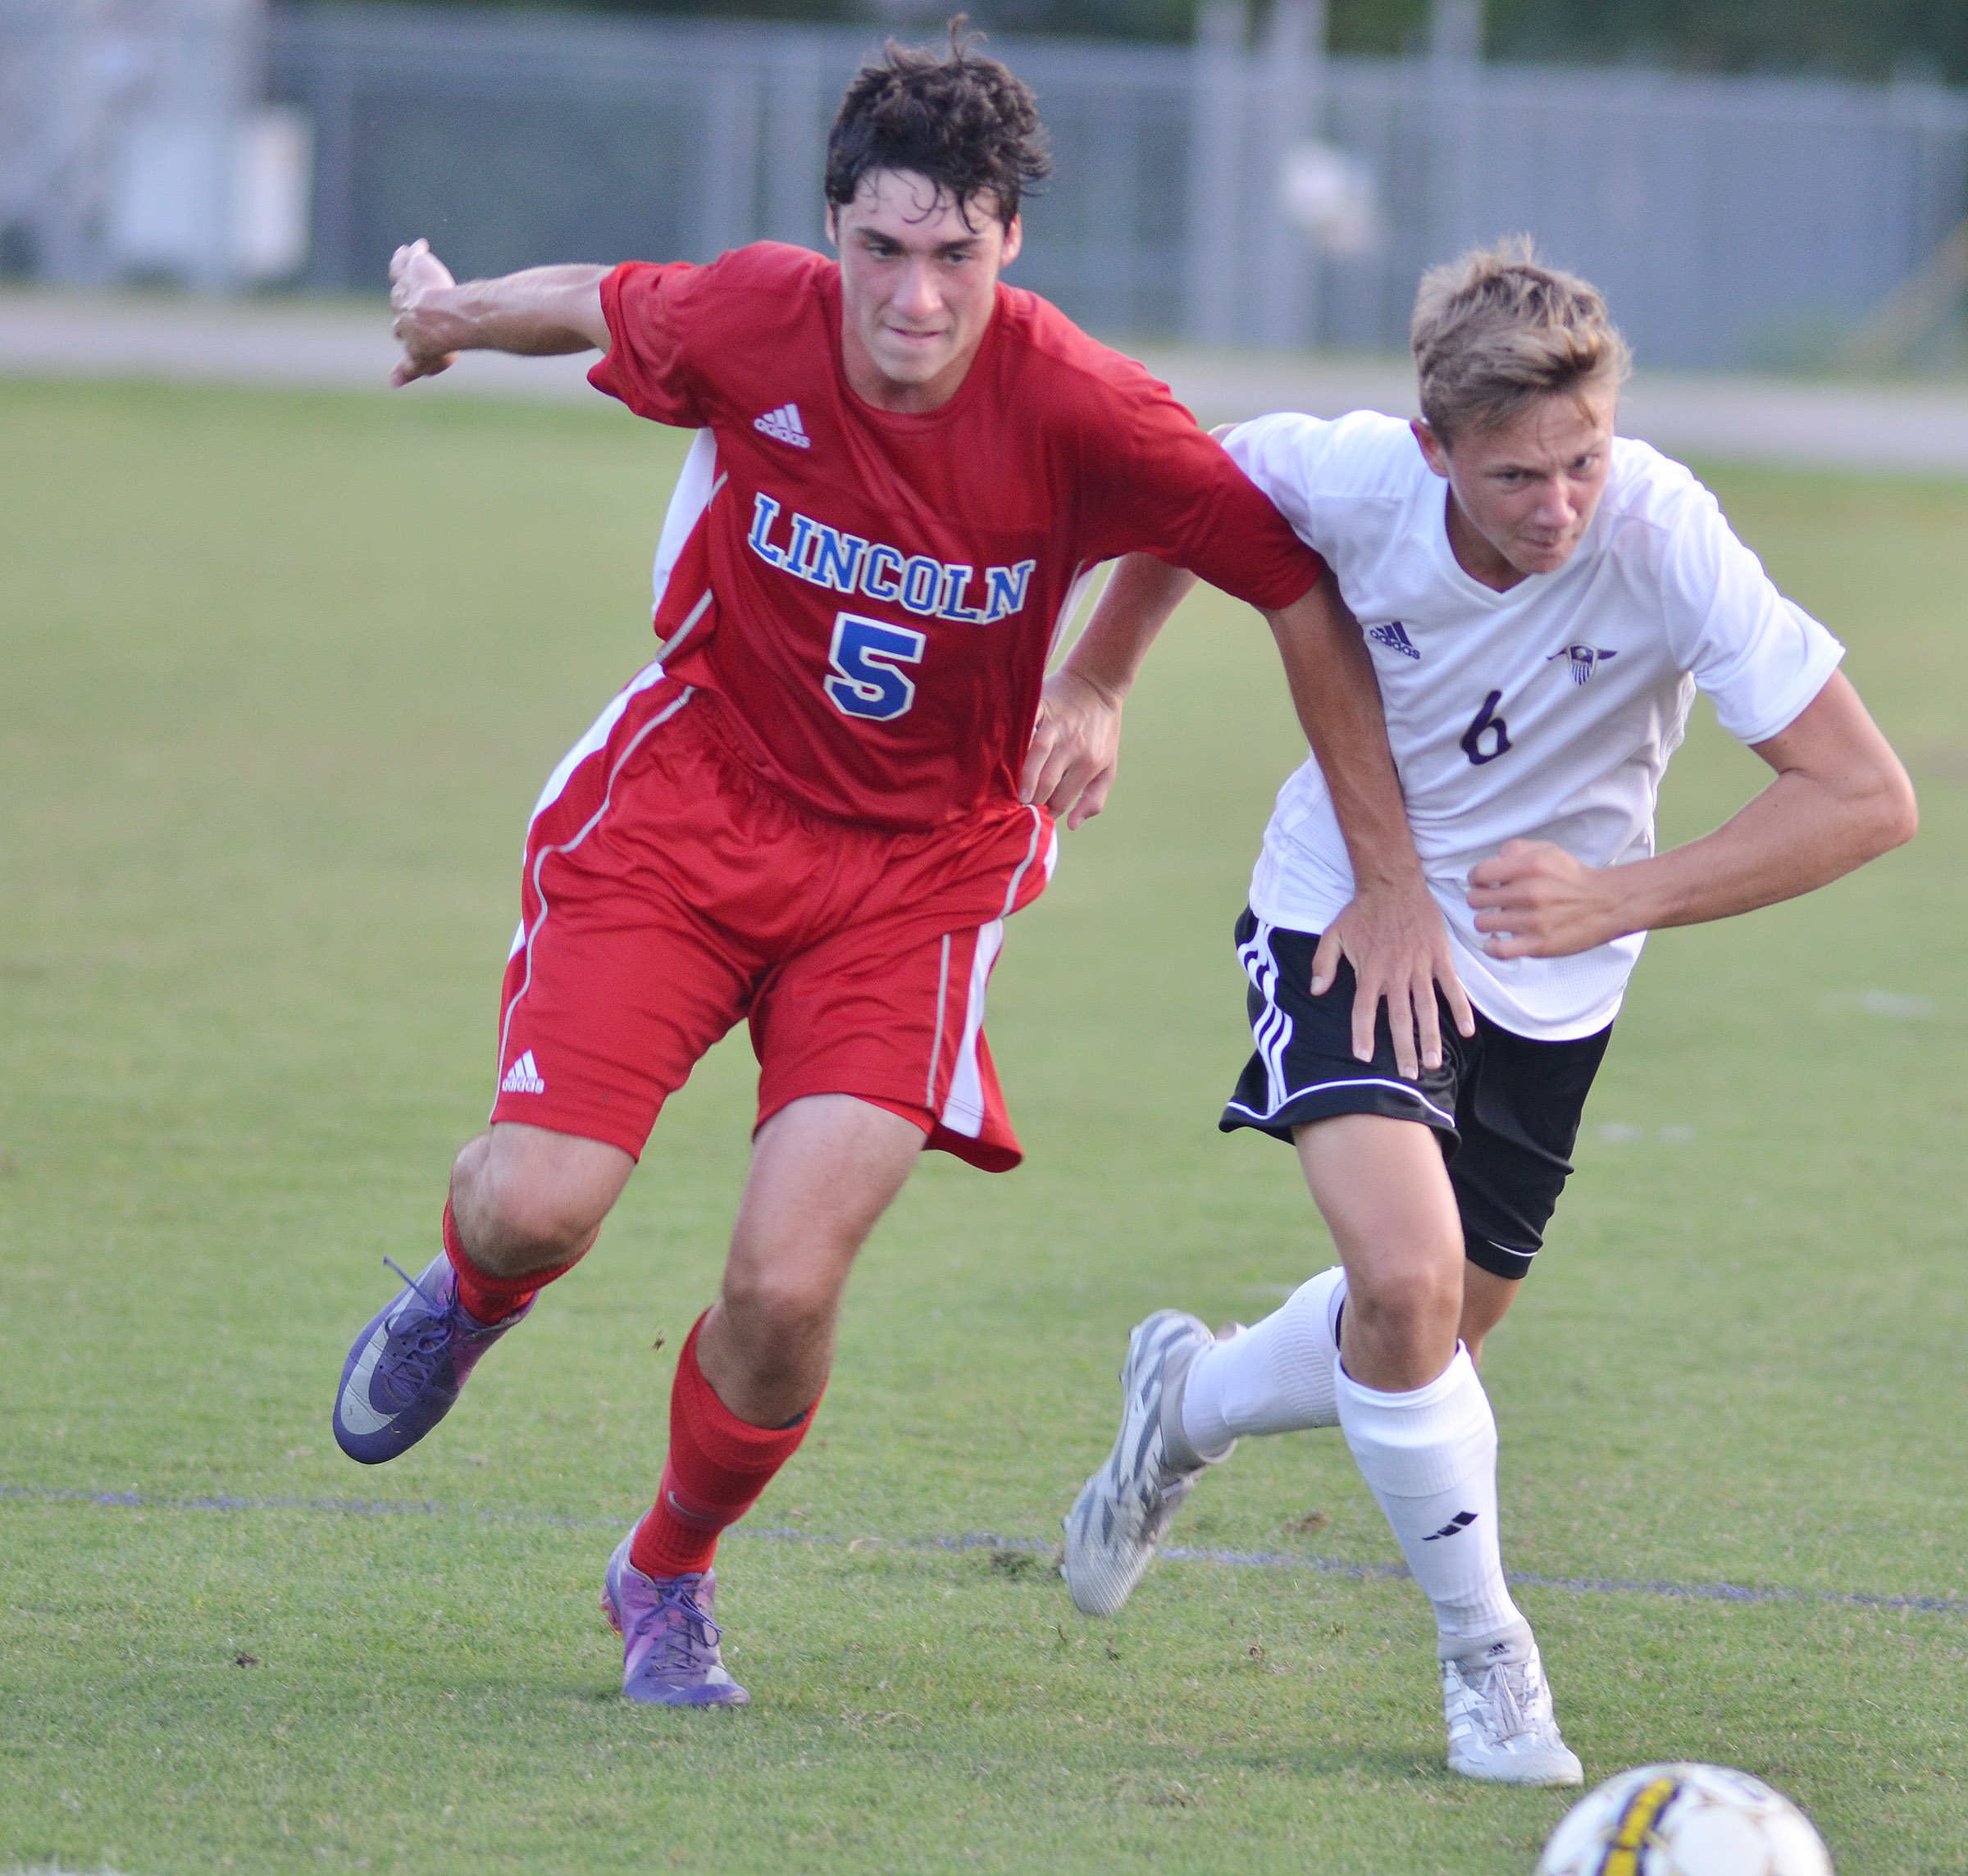 CHS freshman Blase Wheatley runs to the ball.